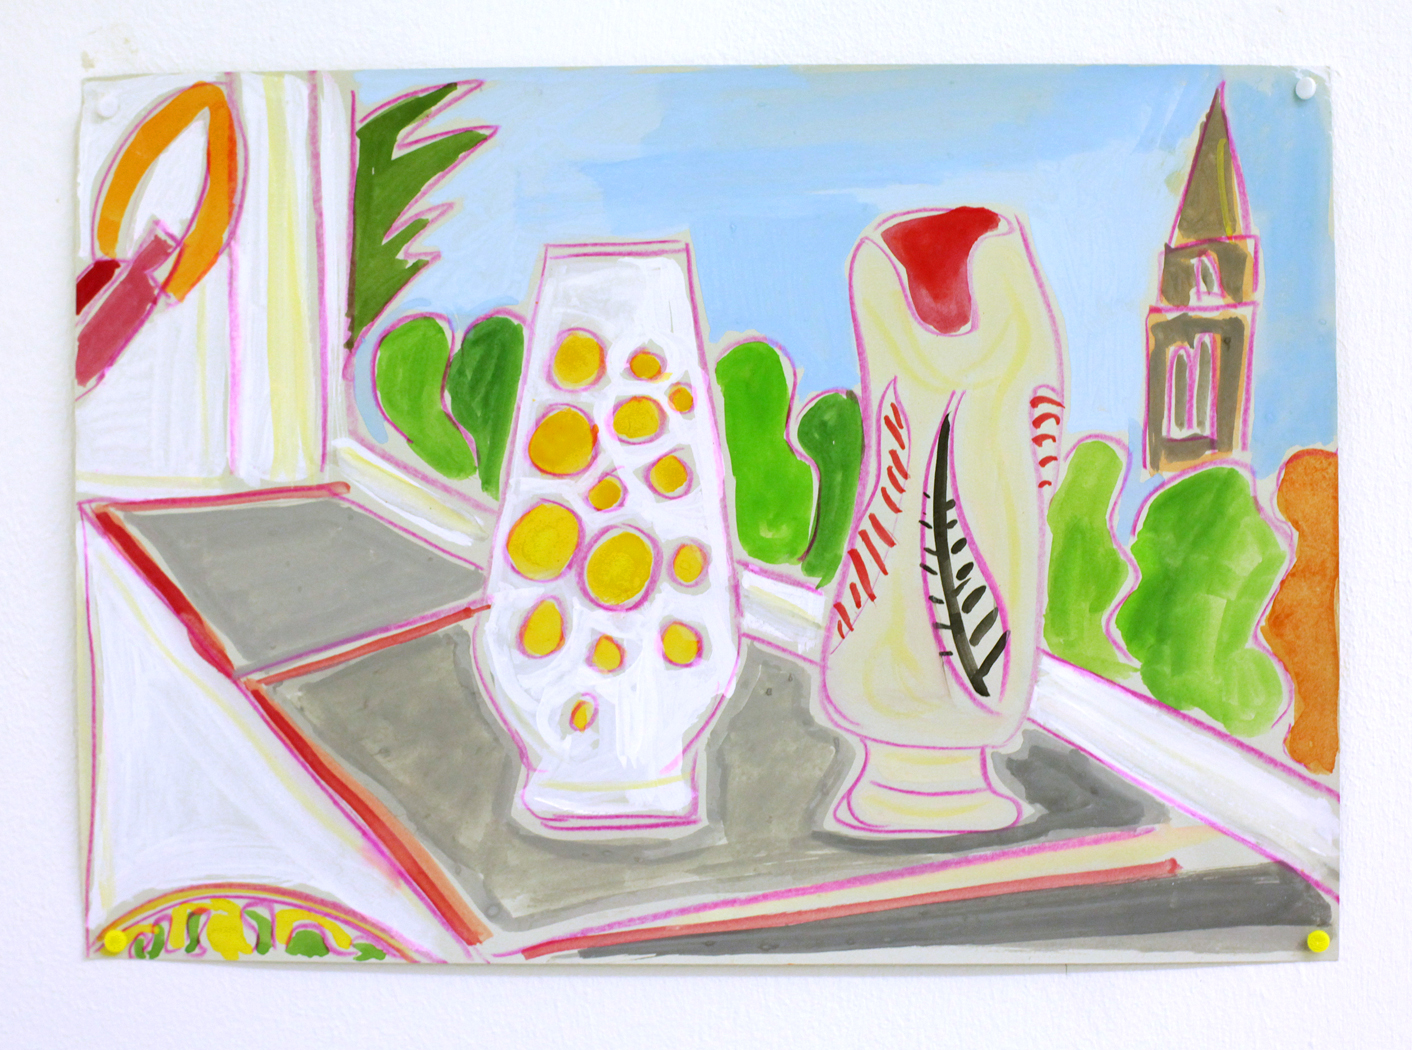 '2 Vases (one from Frinton-on-Sea) and St Mary's church', 2015, watercolour and pencil on paper, 21 x 29.5 cm